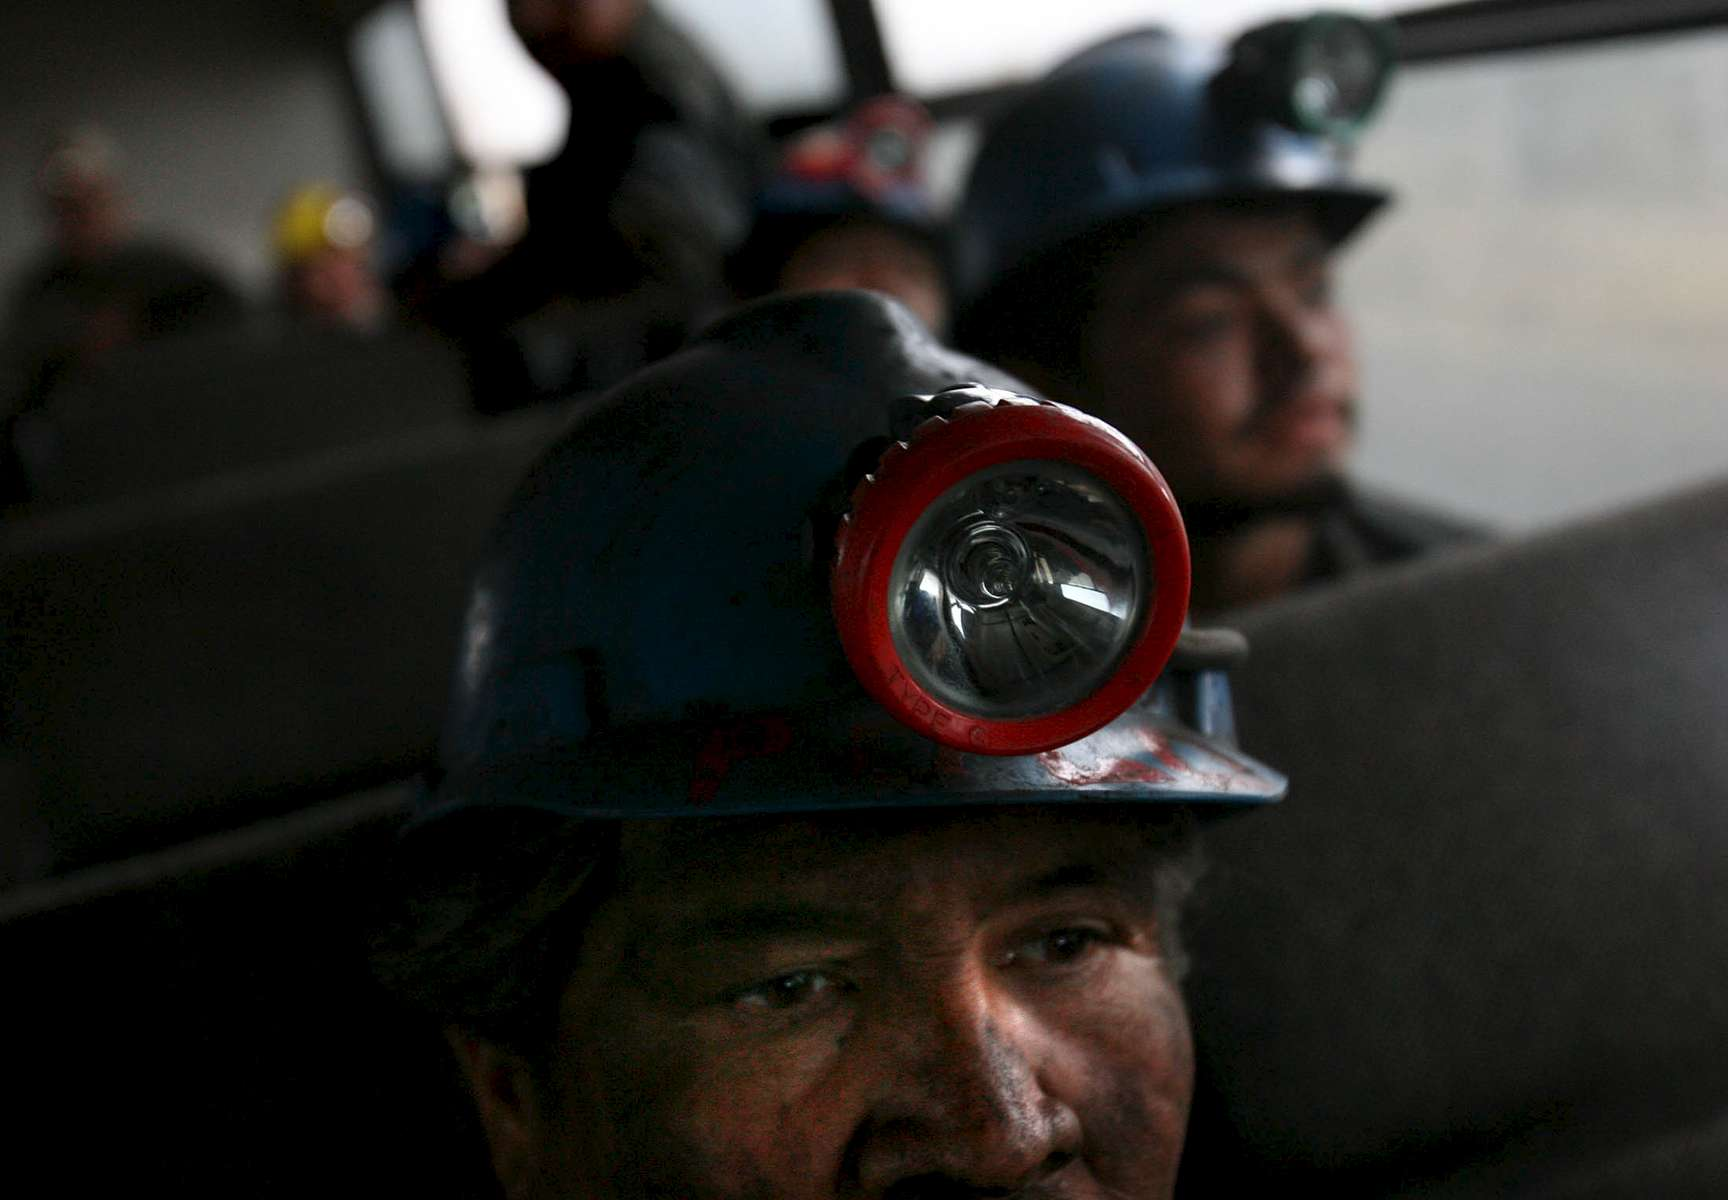 Coal miners leave on a bus after work in rescue efforts Friday at the Pasta de Conchos coal mine in San Juan de Sabinas in the Mexican state of Coahuila. Family members continued to wait outside the Pasta de Conchos coal mine as well. In the Early morning on Sunday 65 miners were trapped as much as 2000 feet below ground after an explosion.Sharón Steinmann / Houston Chronicle